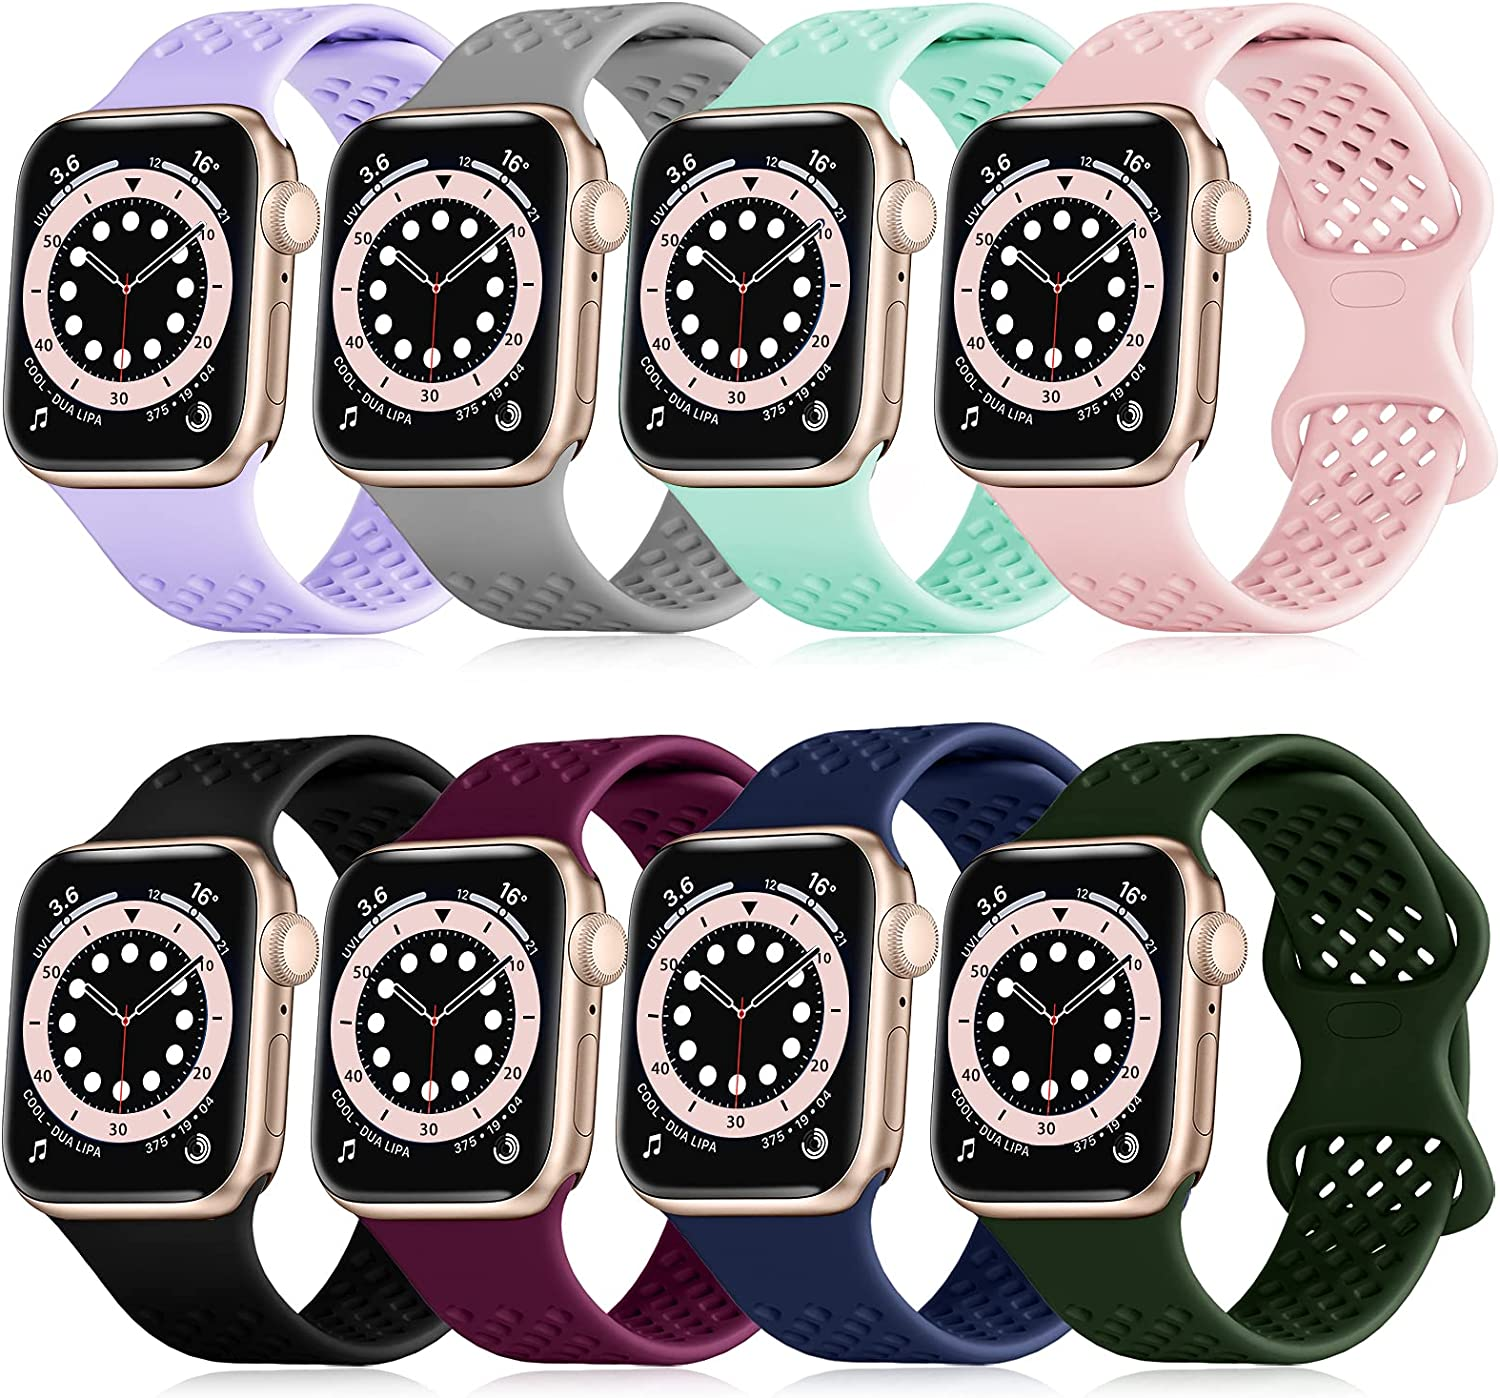 FAKIDOM [8-Pack] Sport Band Compatible with Apple Watch Bands 44mm 42mm 40mm 38mm for Women Men, Breathable Soft Silicone Wristbands, Strap Replacement for iWatch SE/Series 6/5/4/3/2/1(38/40-S)